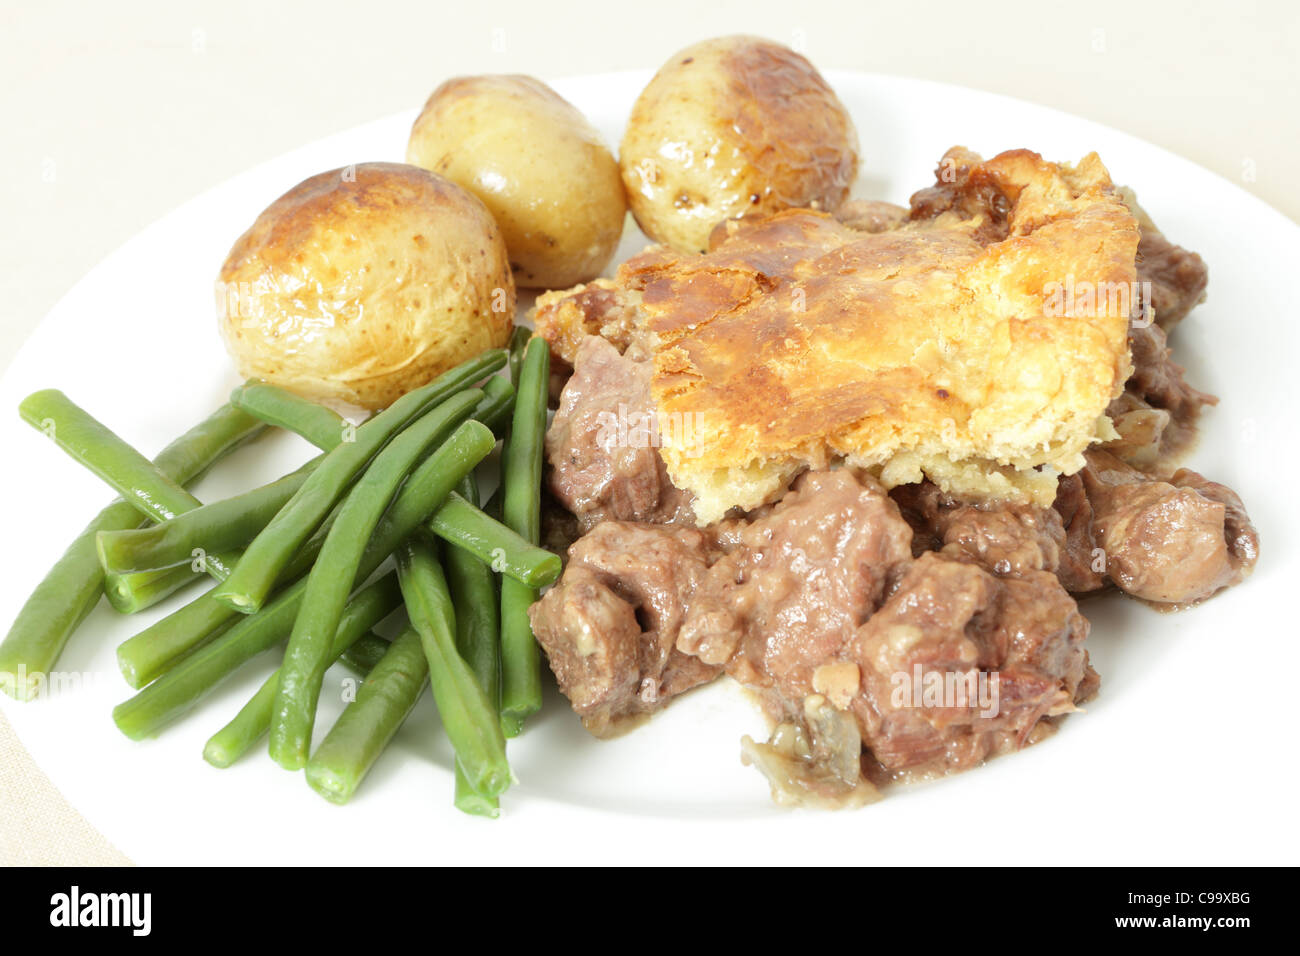 A traditional, home-made steak and kidney pie served with oven roasted potatoes and haricot beans. - Stock Image